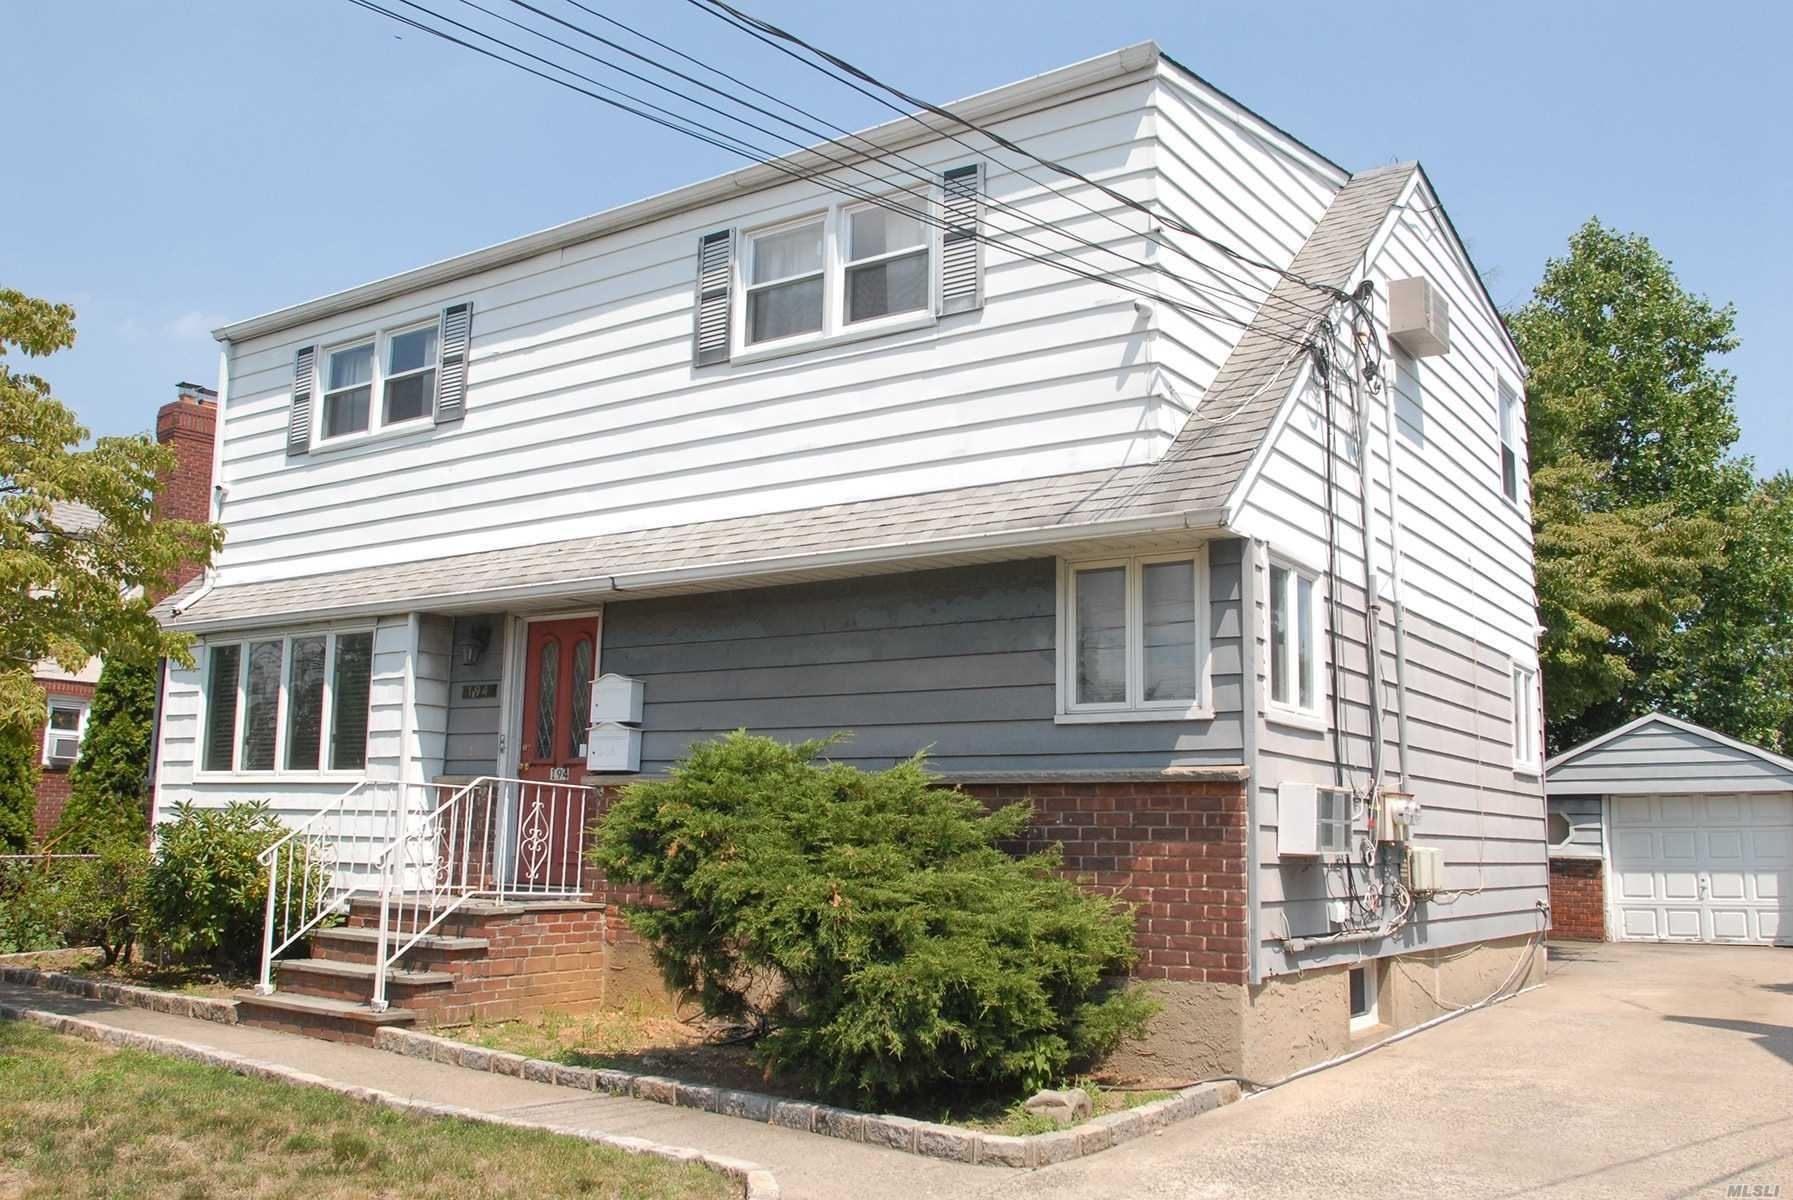 194 Covert Avenue, Floral Park, NY 11001 - MLS#: 3236181